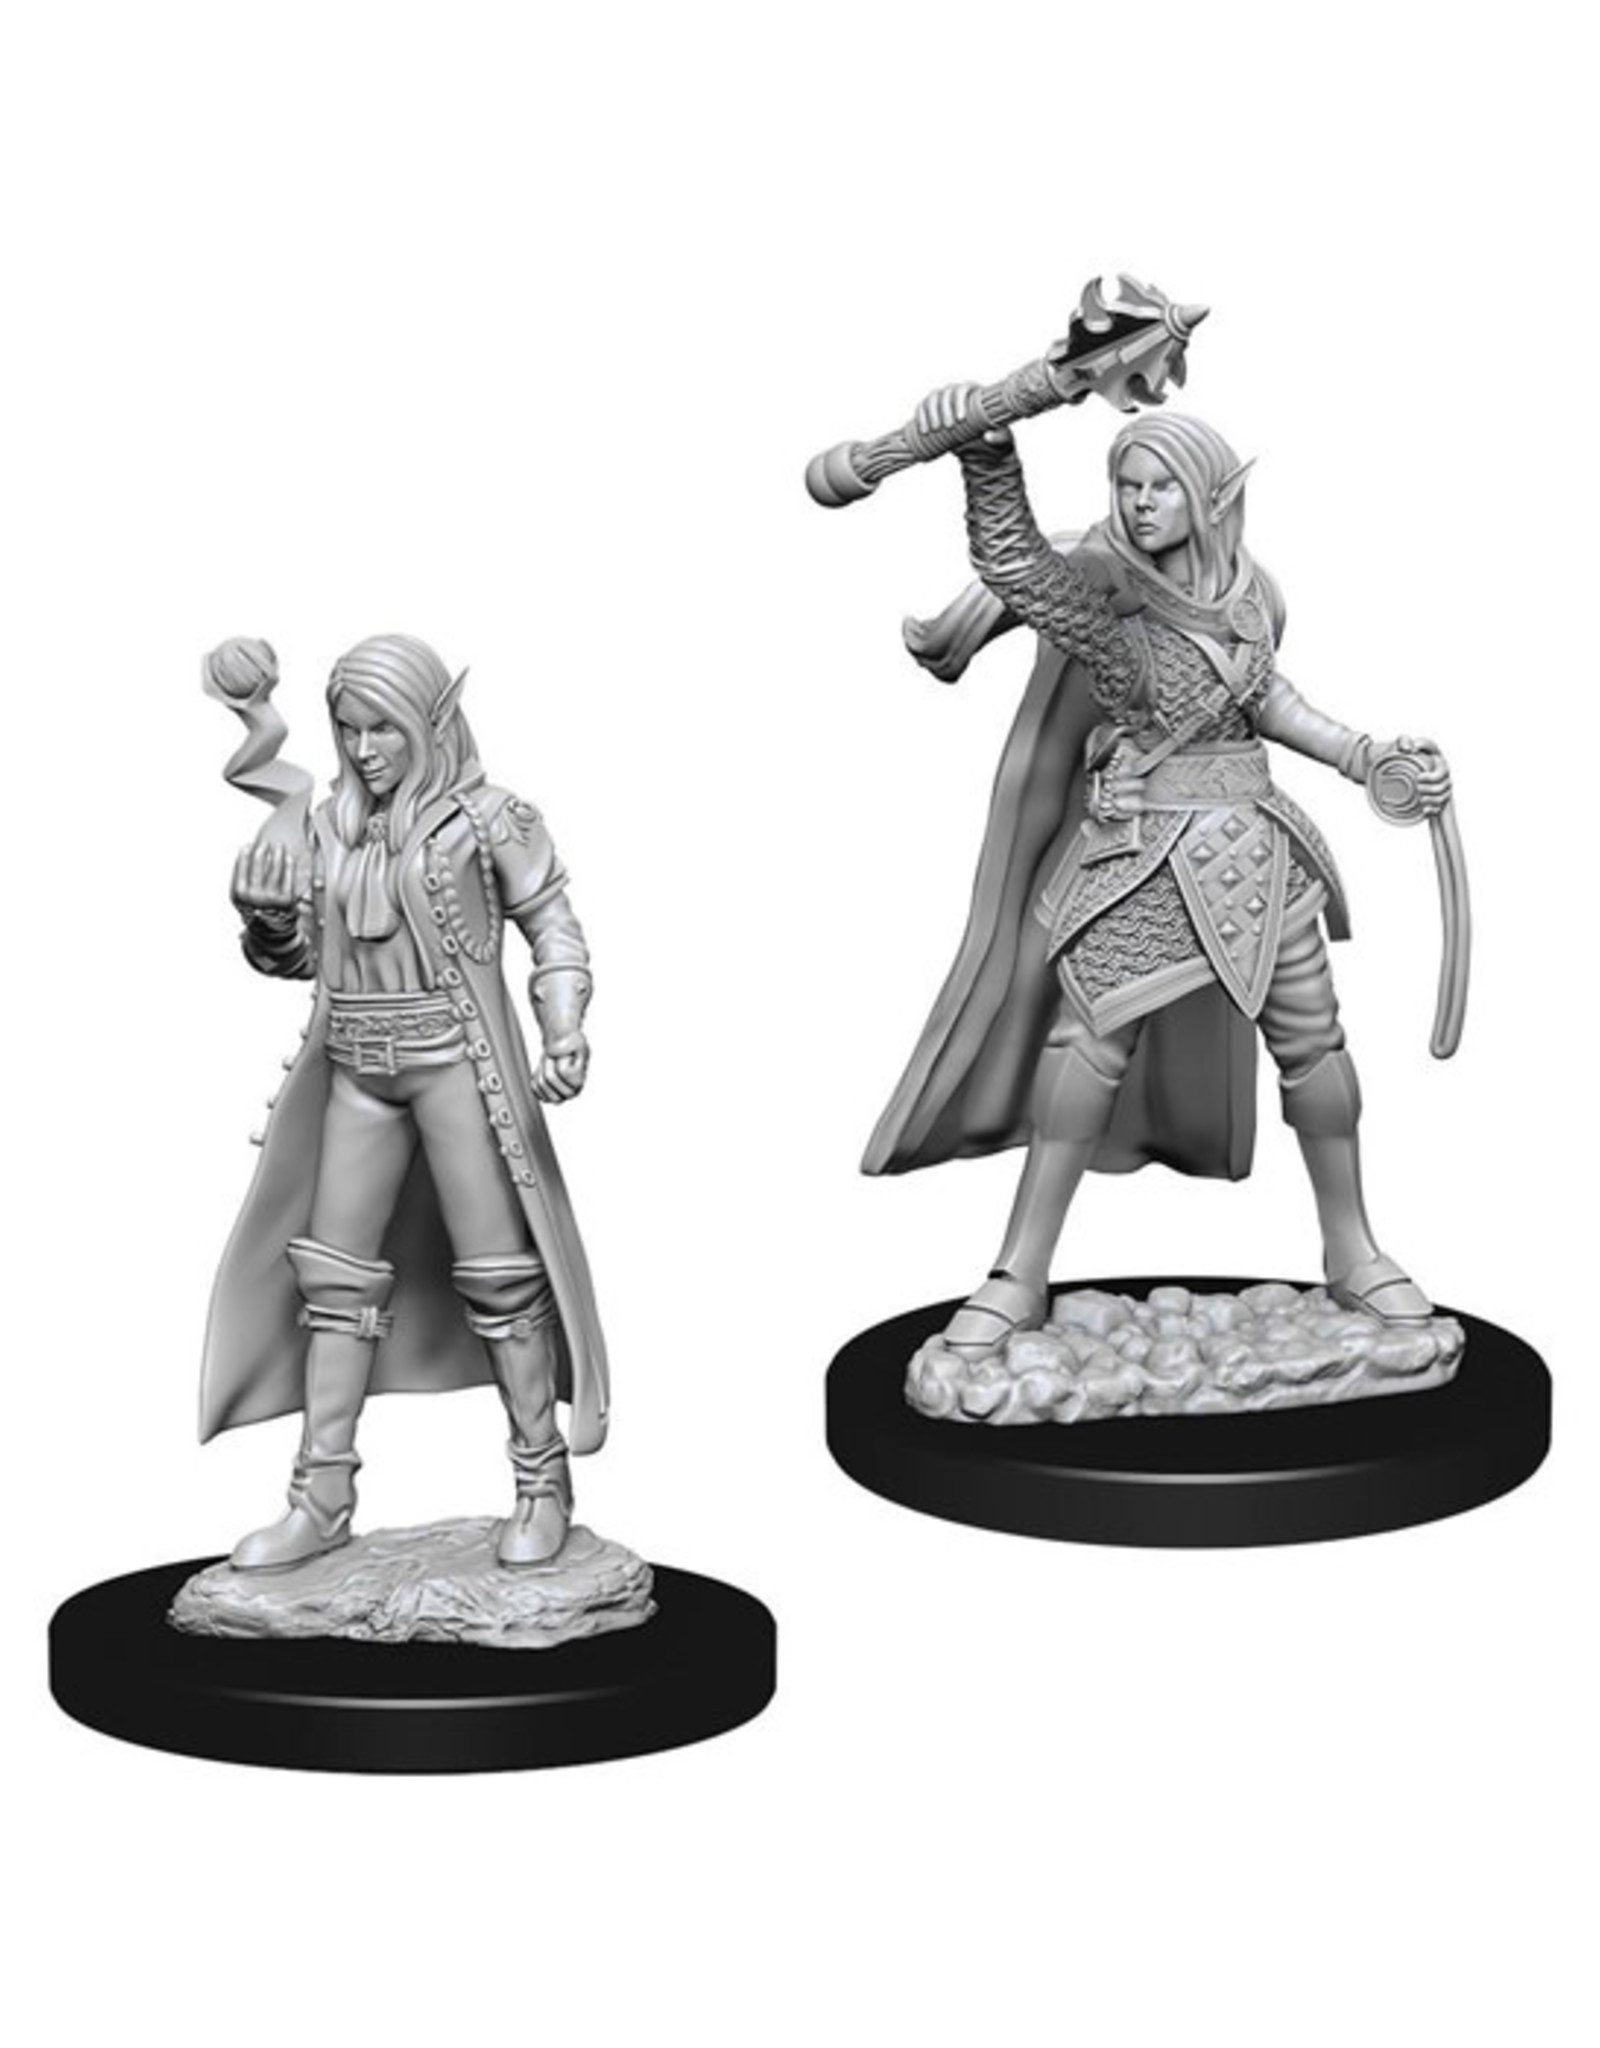 Dungeons & Dragons Dungeons & Dragons: Nolzur's - Elf Female Cleric